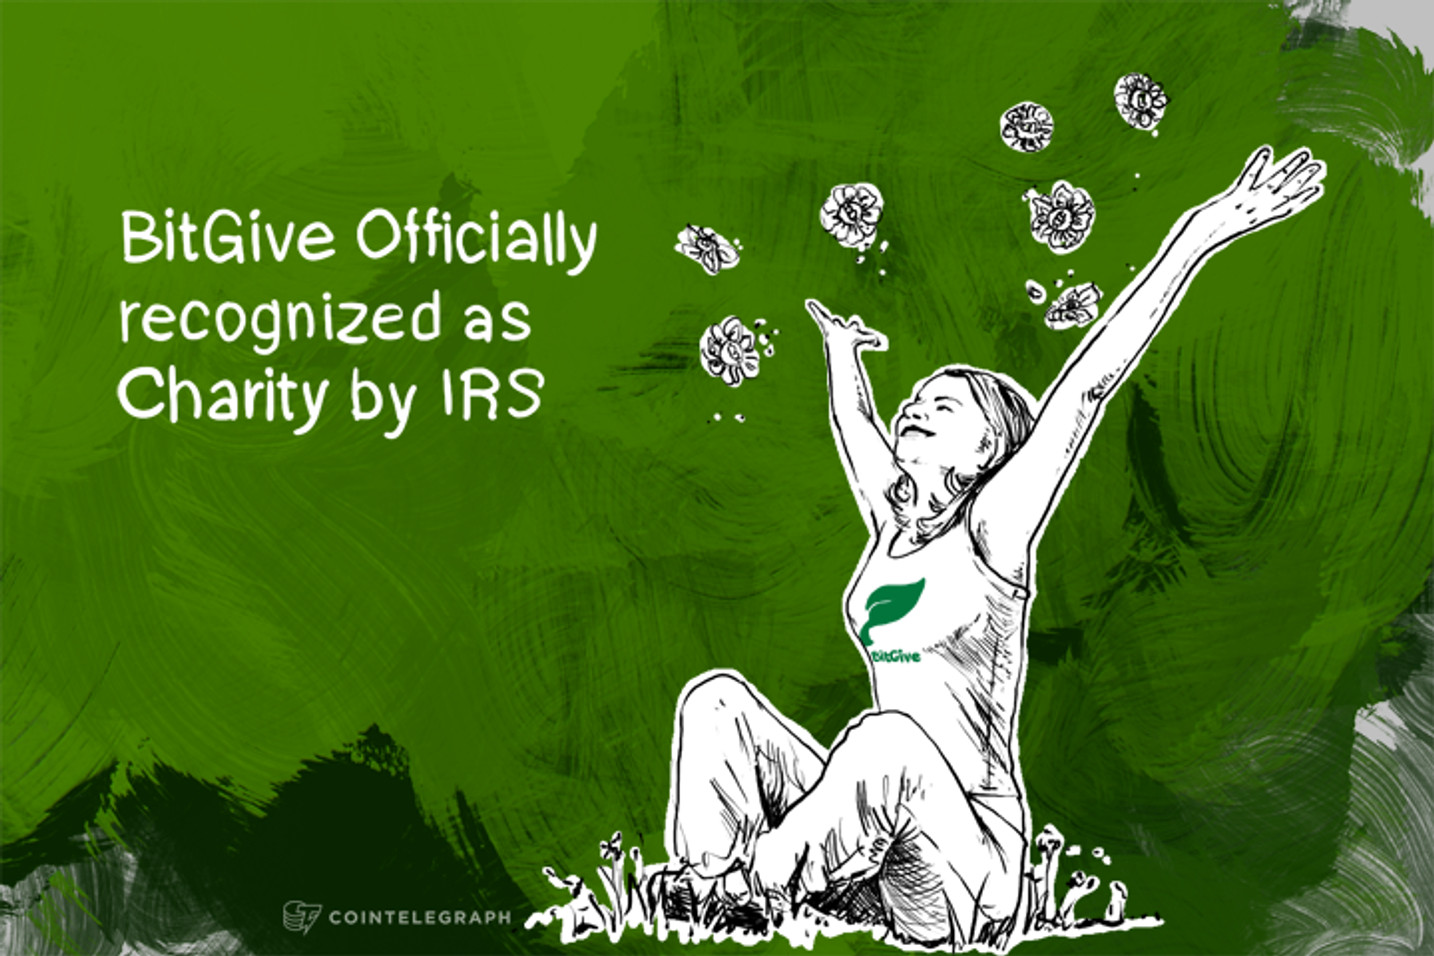 BitGive Officially recognized as Charity by IRS